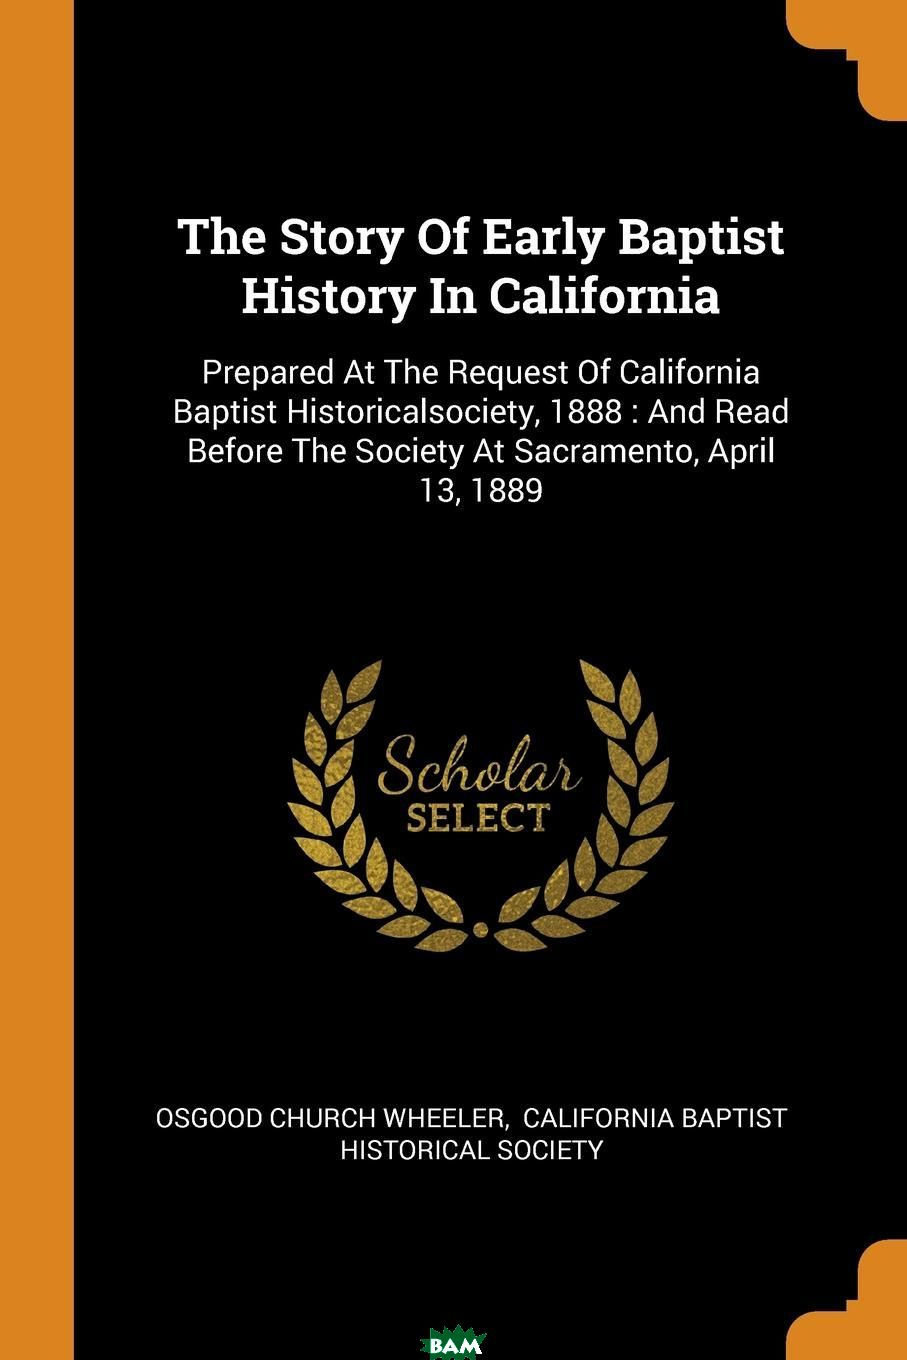 Купить The Story Of Early Baptist History In California. Prepared At The Request Of California Baptist Historicalsociety, 1888 : And Read Before The Society At Sacramento, April 13, 1889, Osgood Church Wheeler, 9780353545564